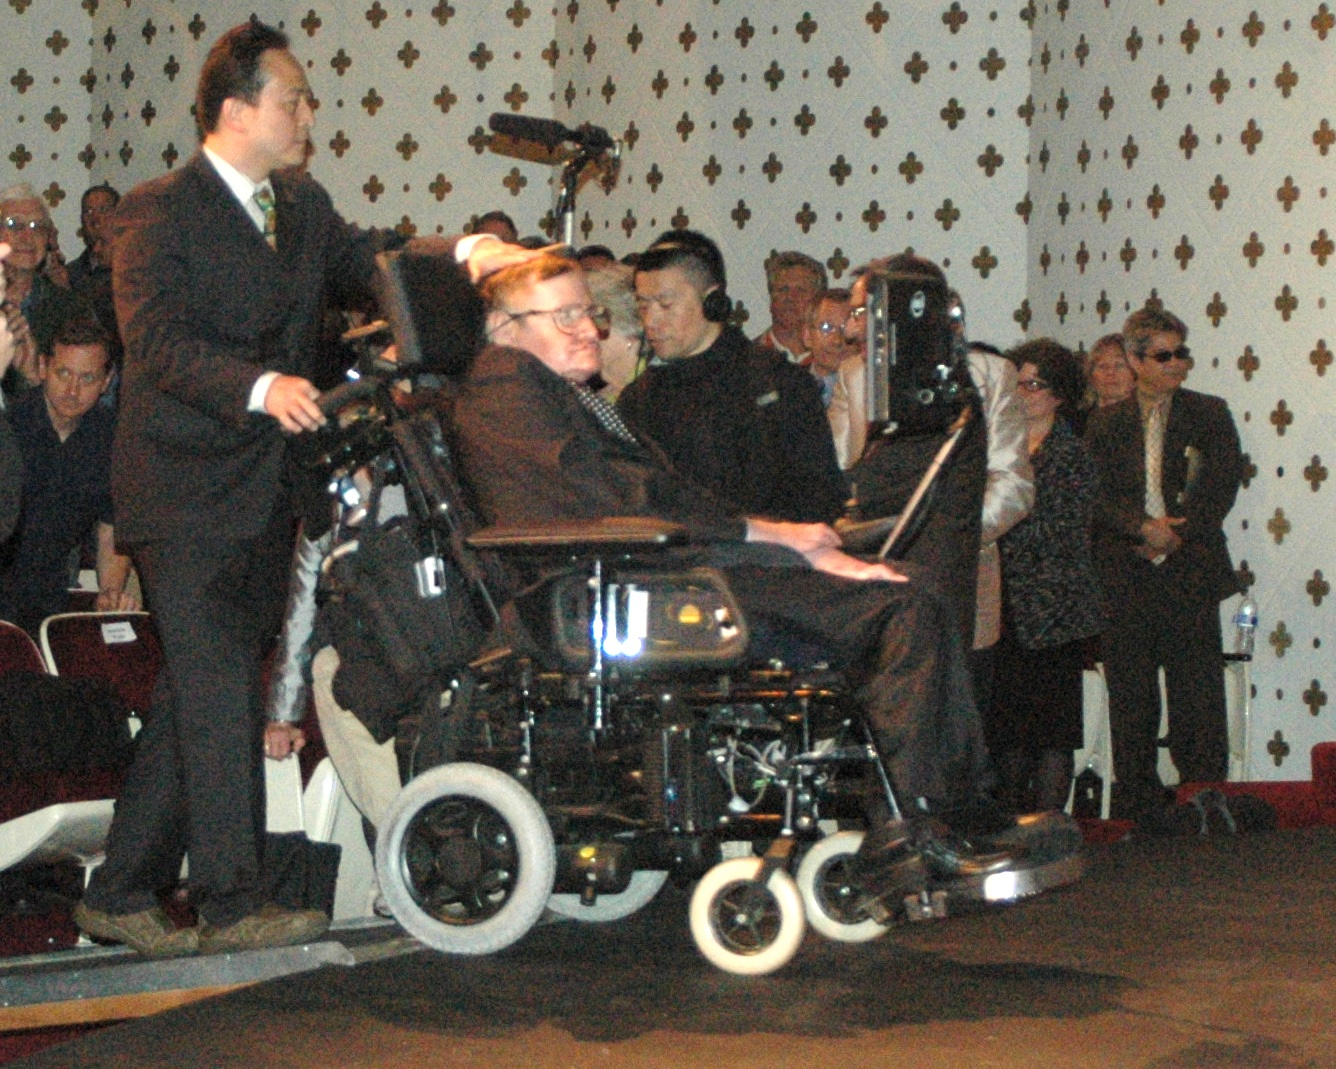 Stephen Hawking: Big Bang khng cn c Cha